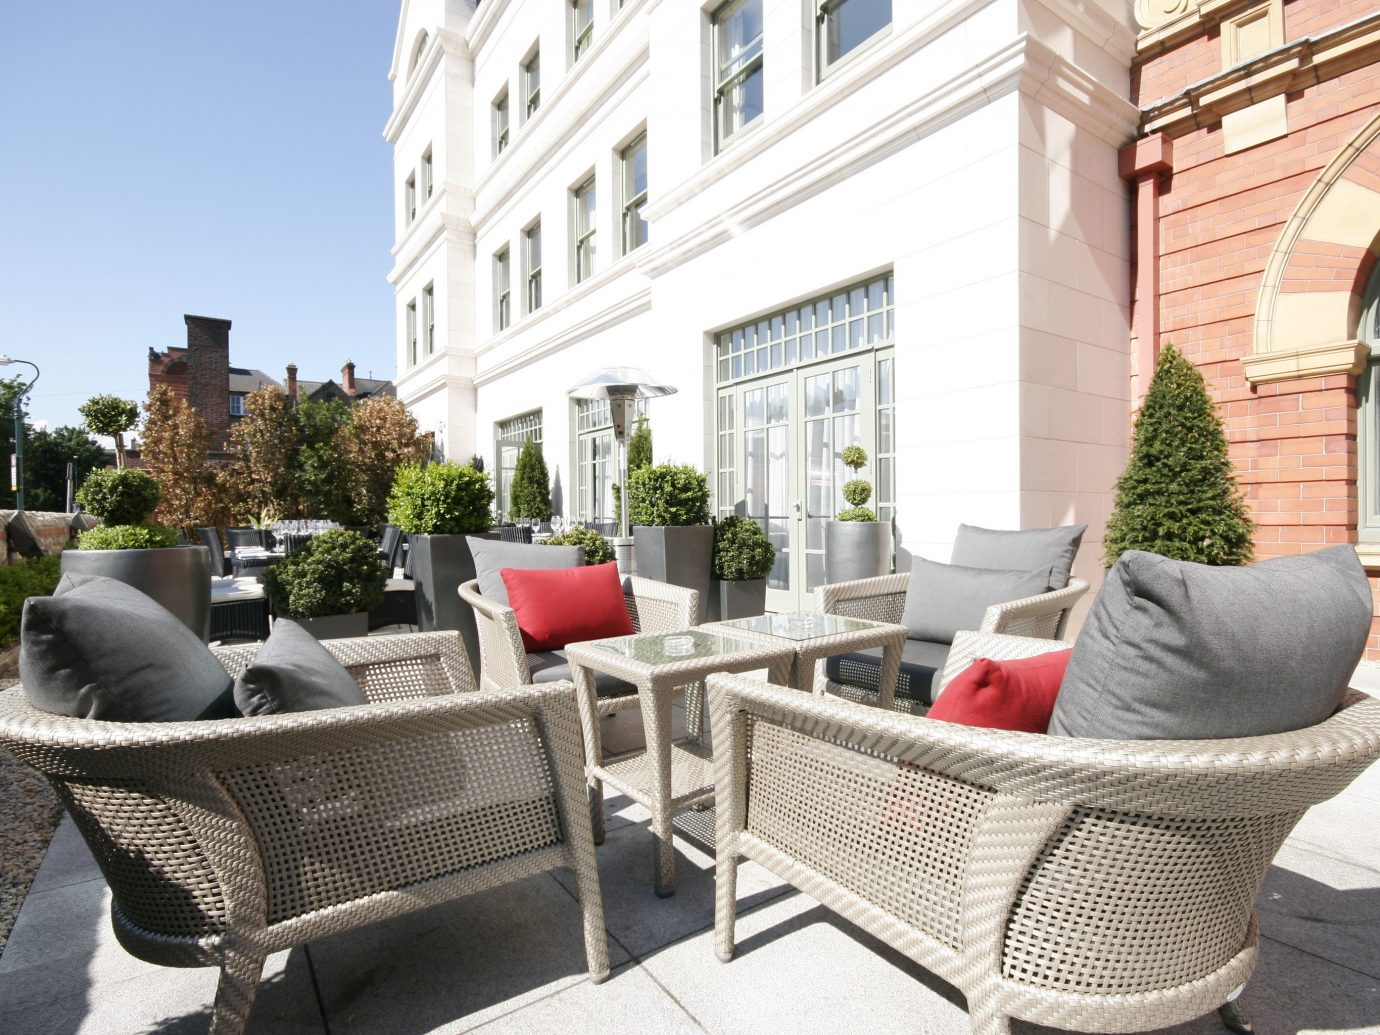 Dublin Hotels Ireland property chair Living building furniture real estate Patio apartment home outdoor structure table estate house outdoor furniture interior design Courtyard Balcony window decorated